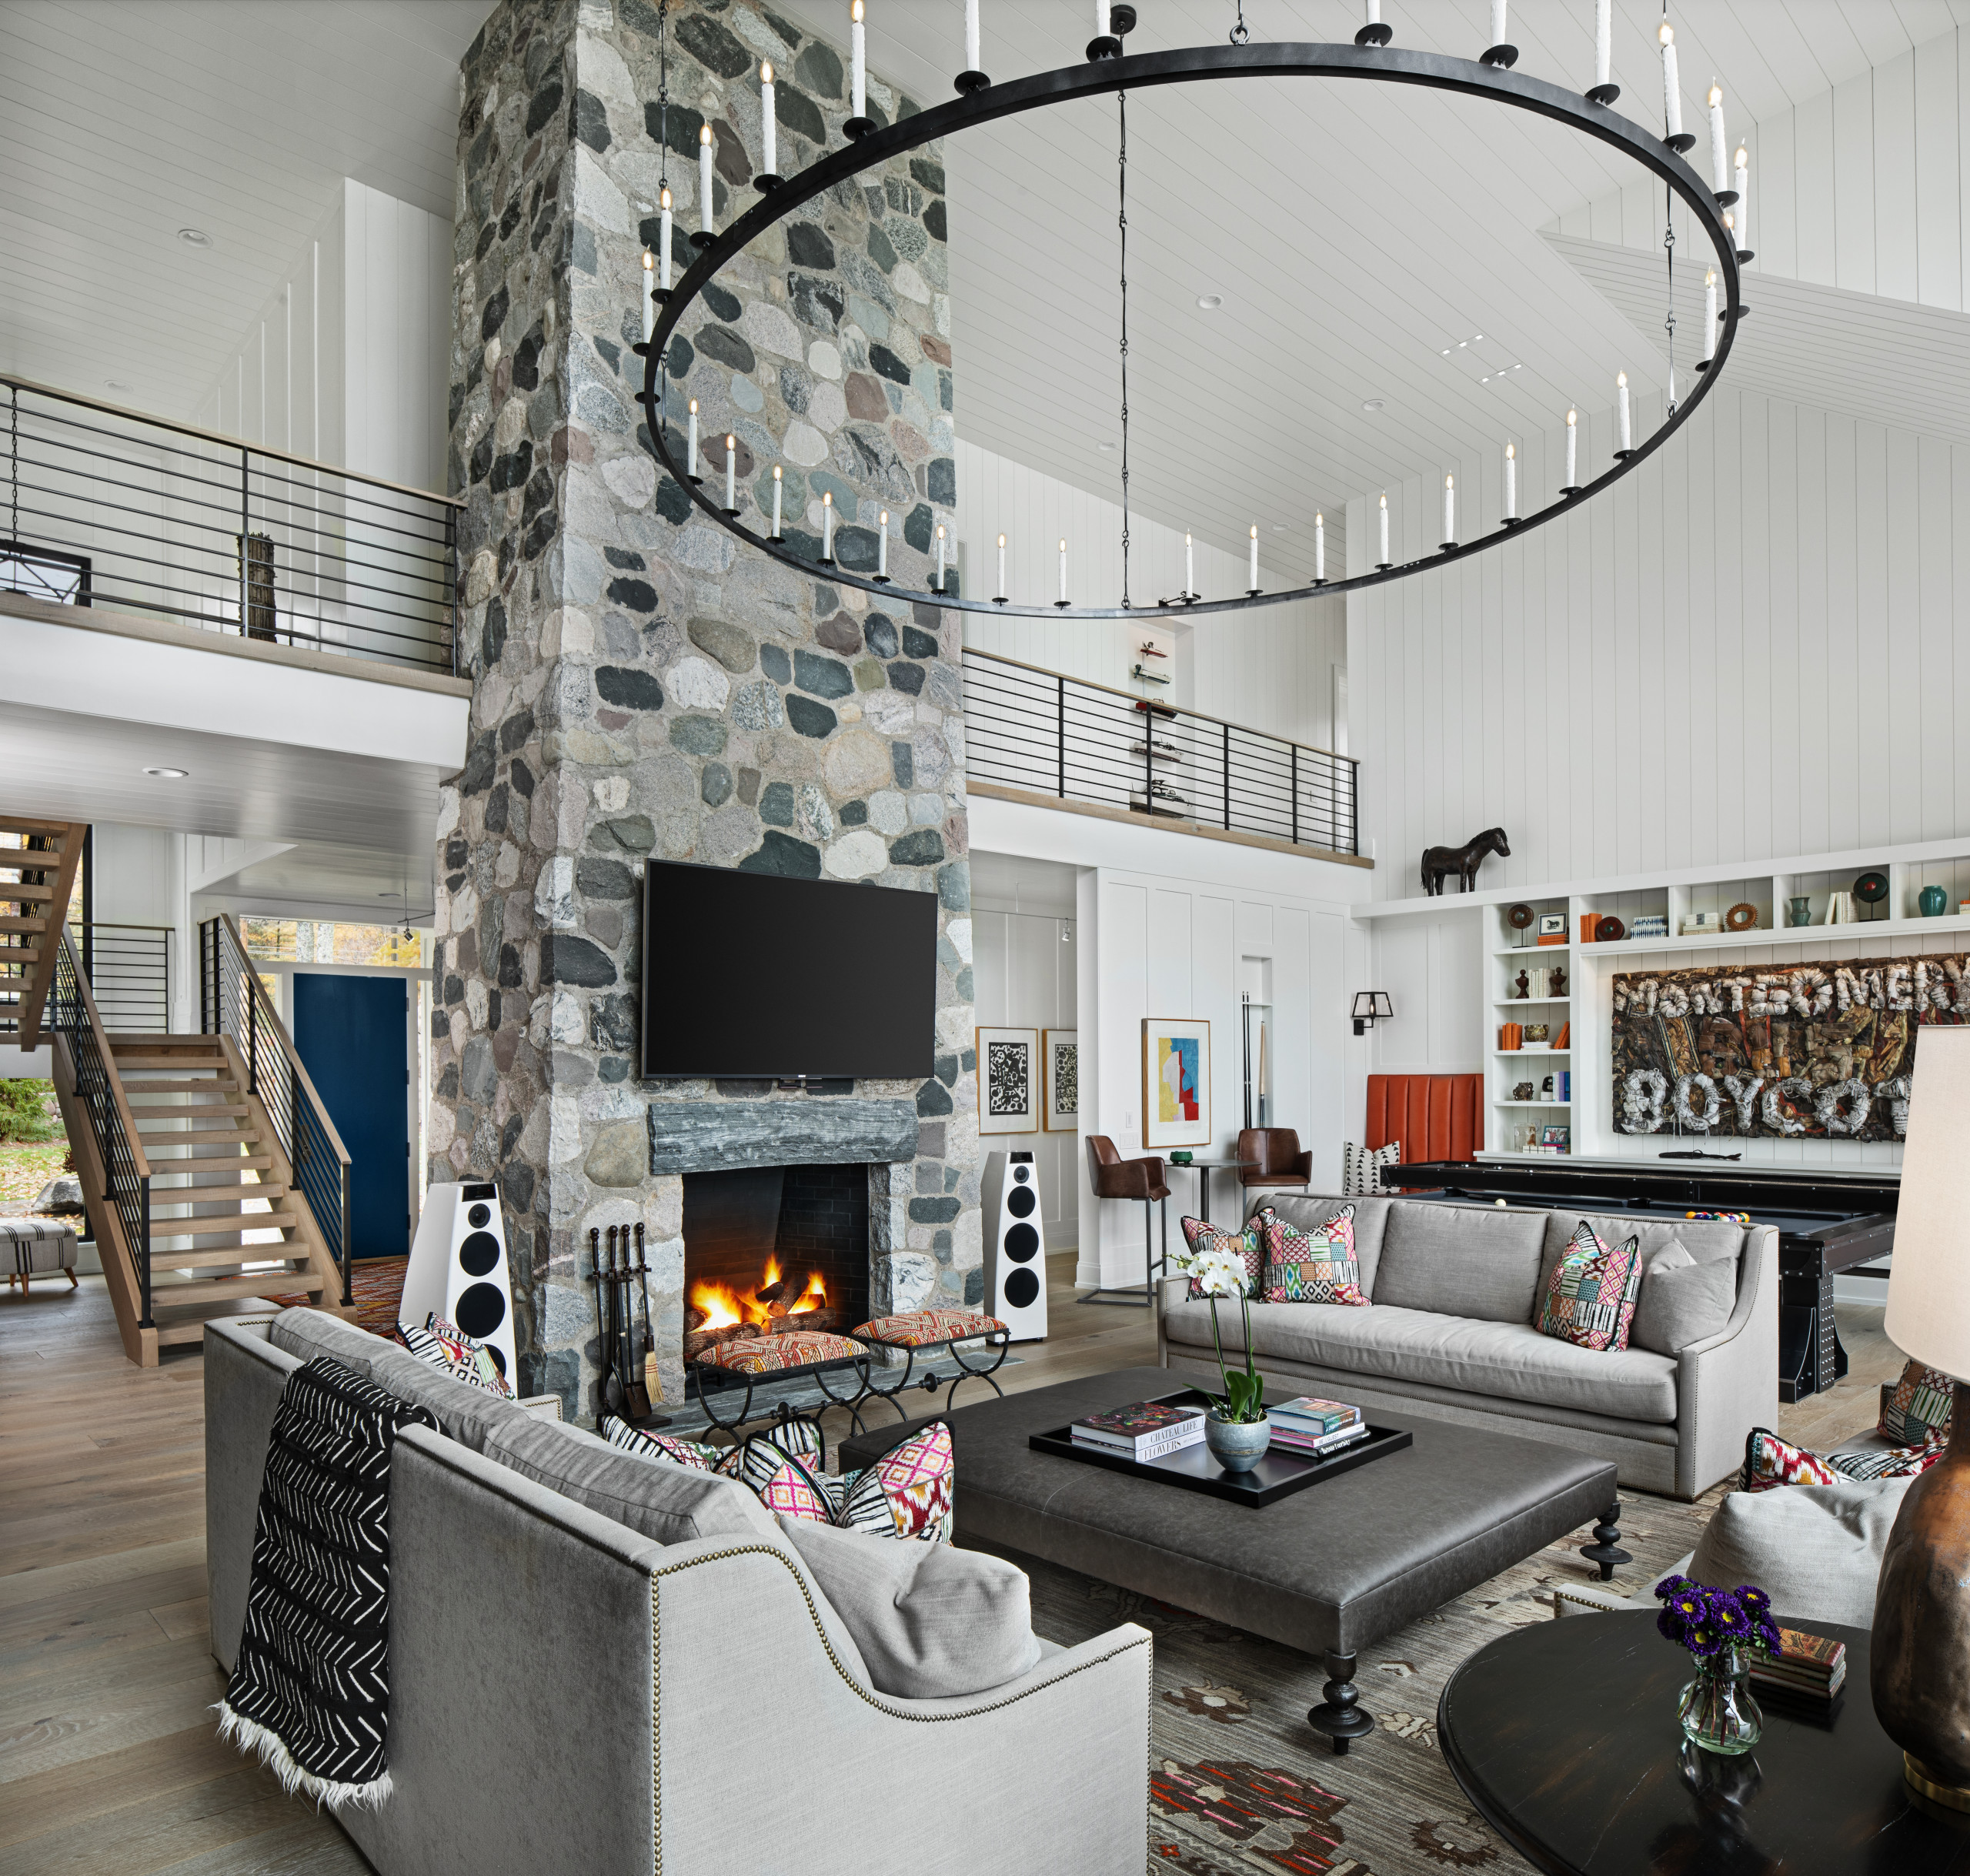 75 Beautiful Living Room With A Stone Fireplace Pictures Ideas October 2020 Houzz